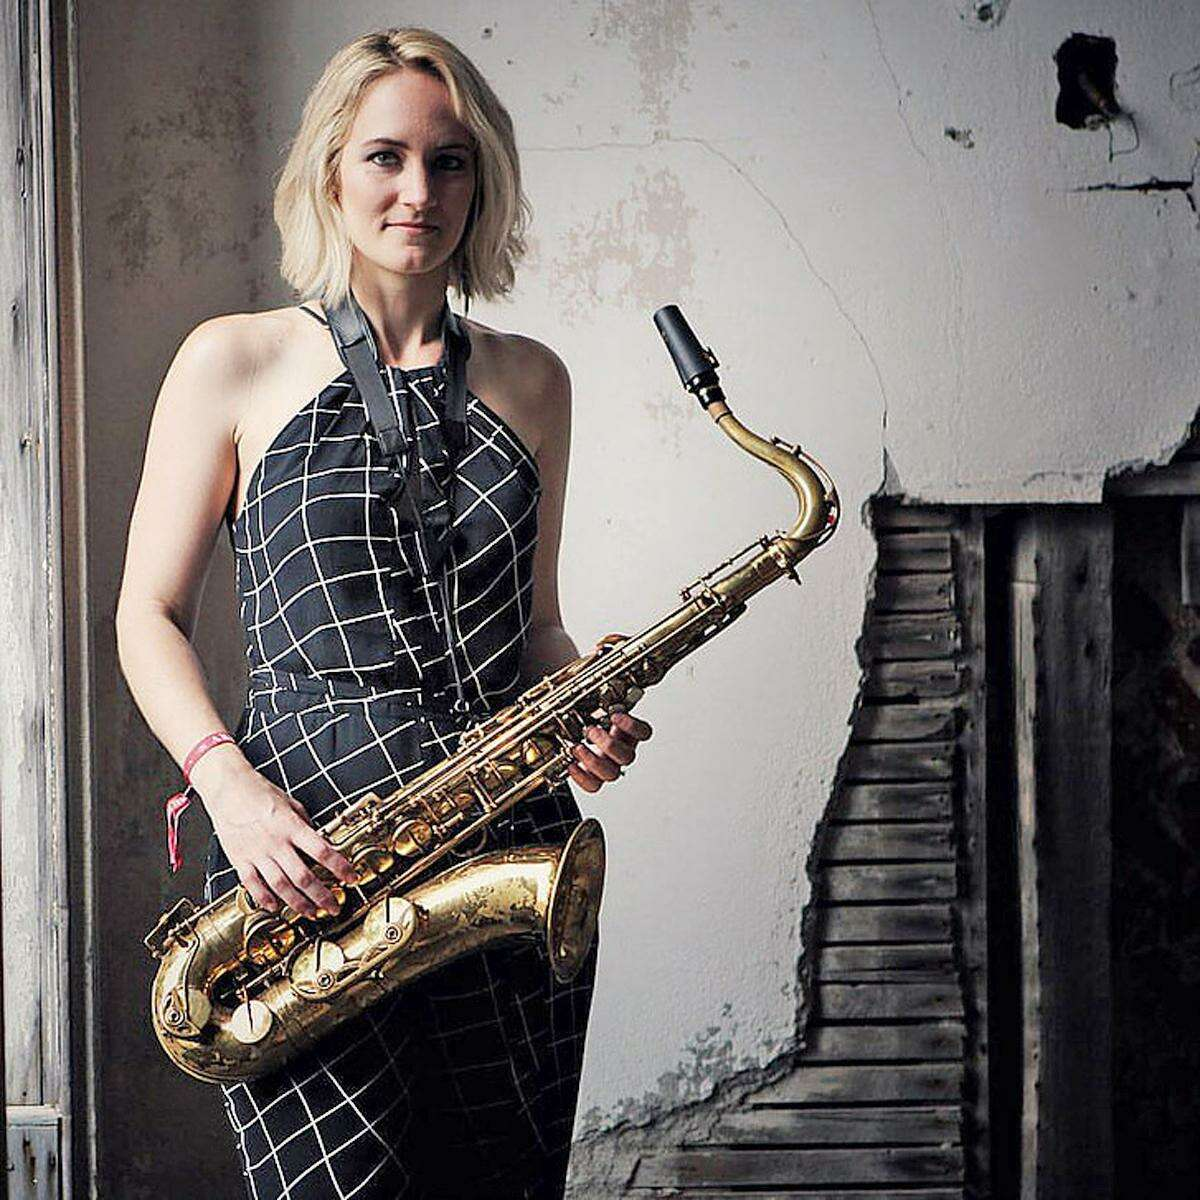 The Roxy Coss Quintet, featuring saxophonist Roxy Coss, will appear at Music Mountain this weekend.